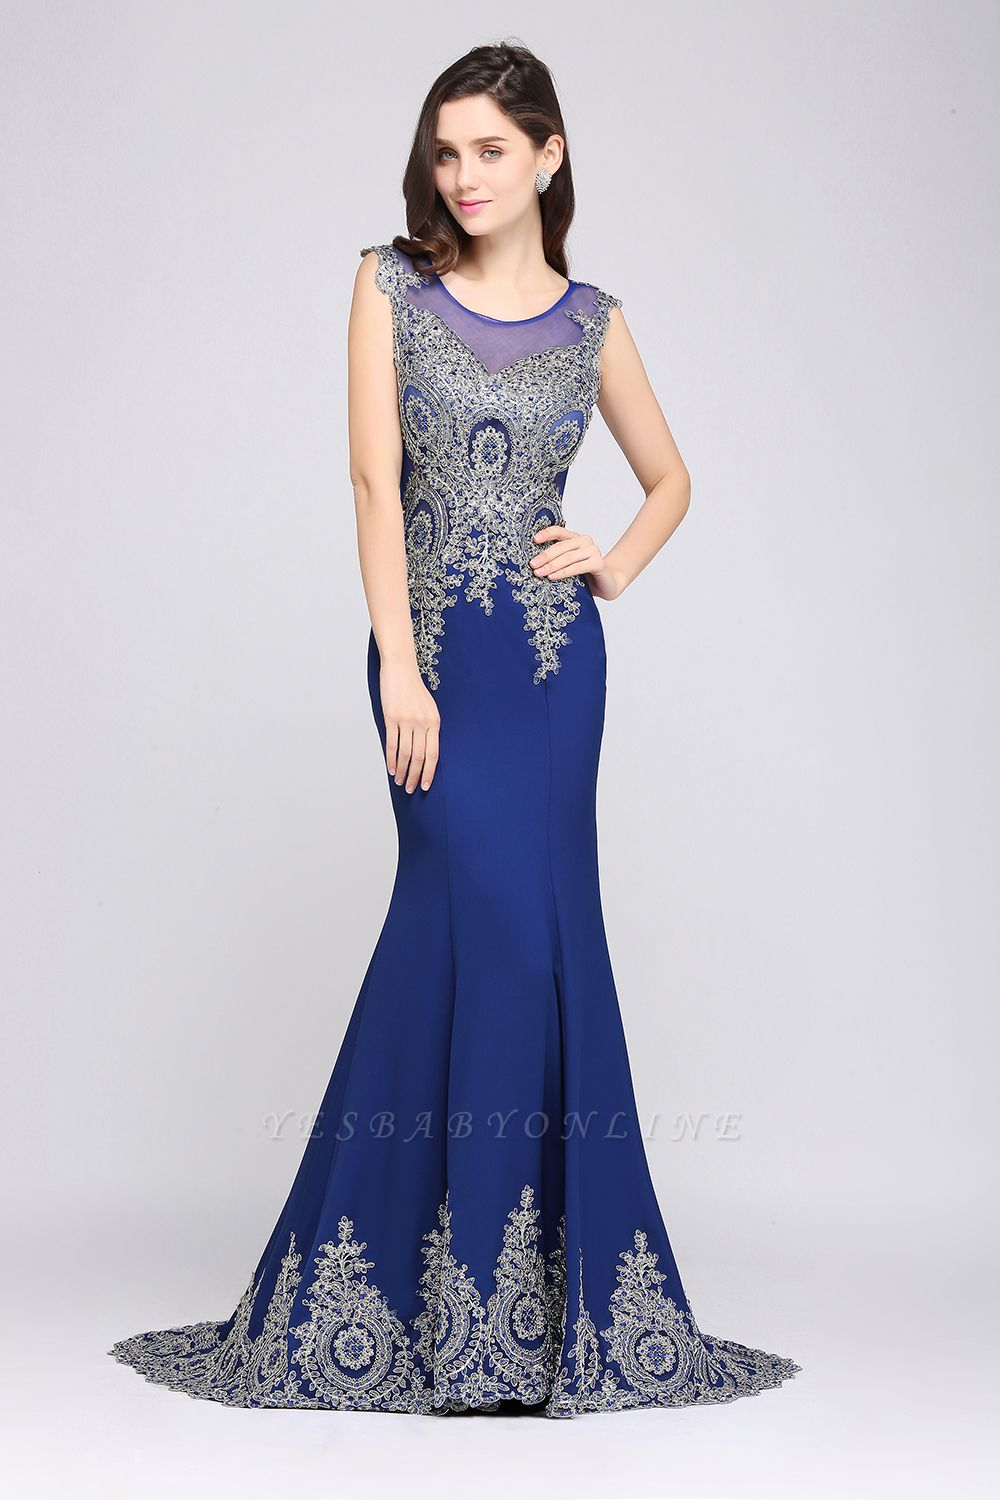 Mermaid Scoop Sweep Train Royal Blue Prom Dresses with Appliques